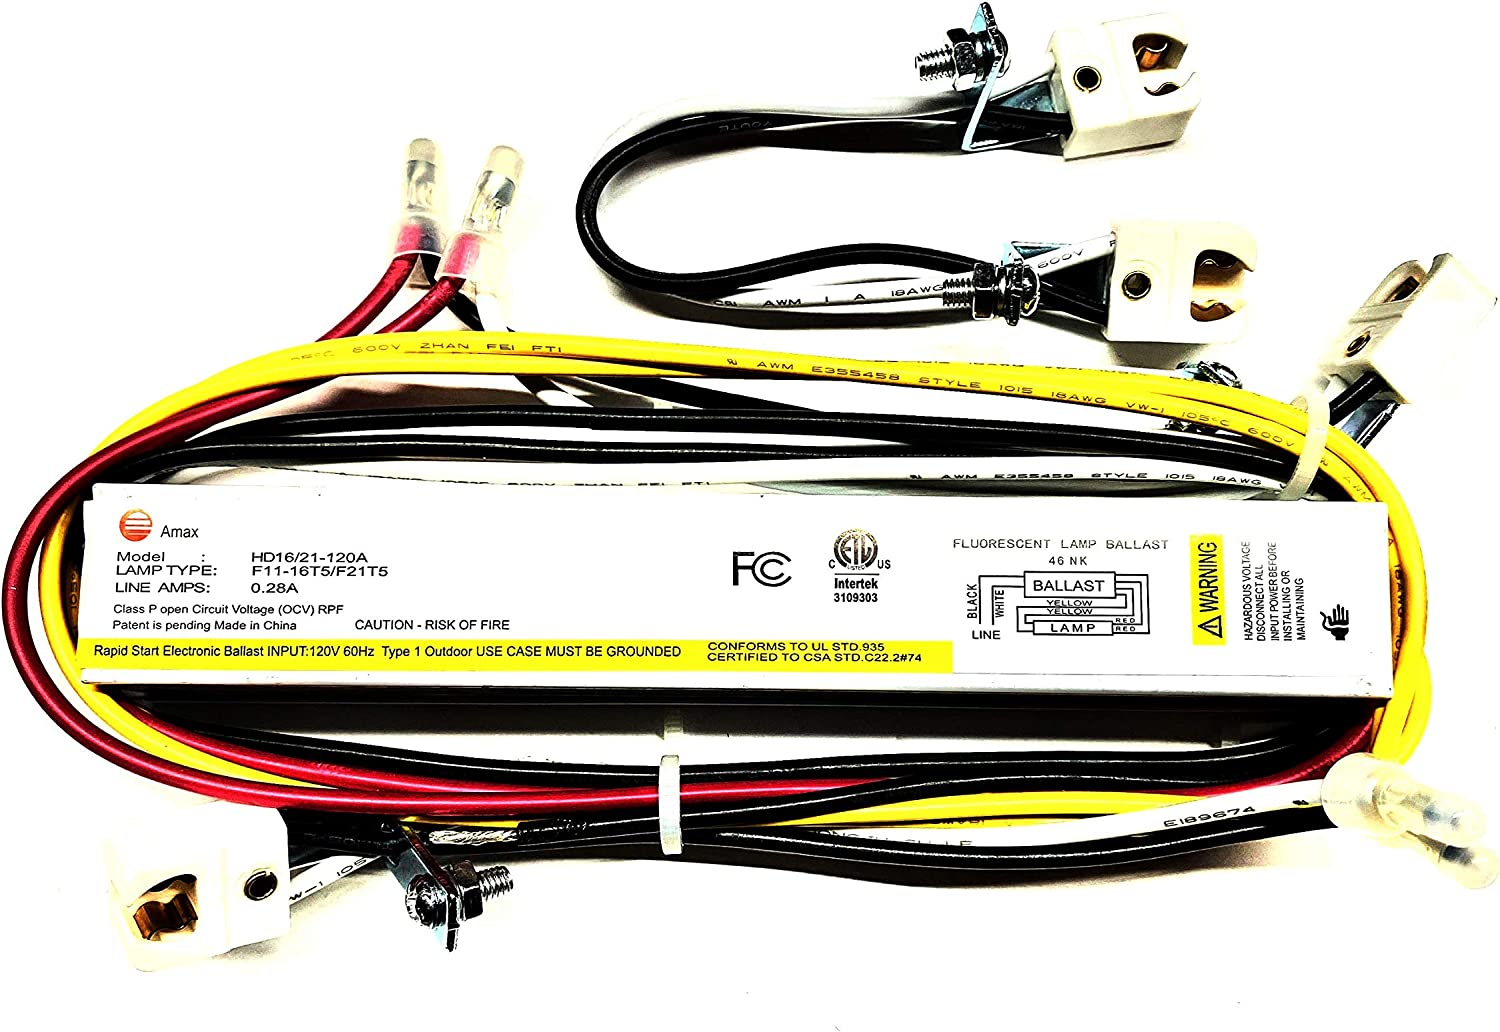 HD8//13-120A Electronic Ballast for F8T5 or F13T5 Fluorescent Lamp